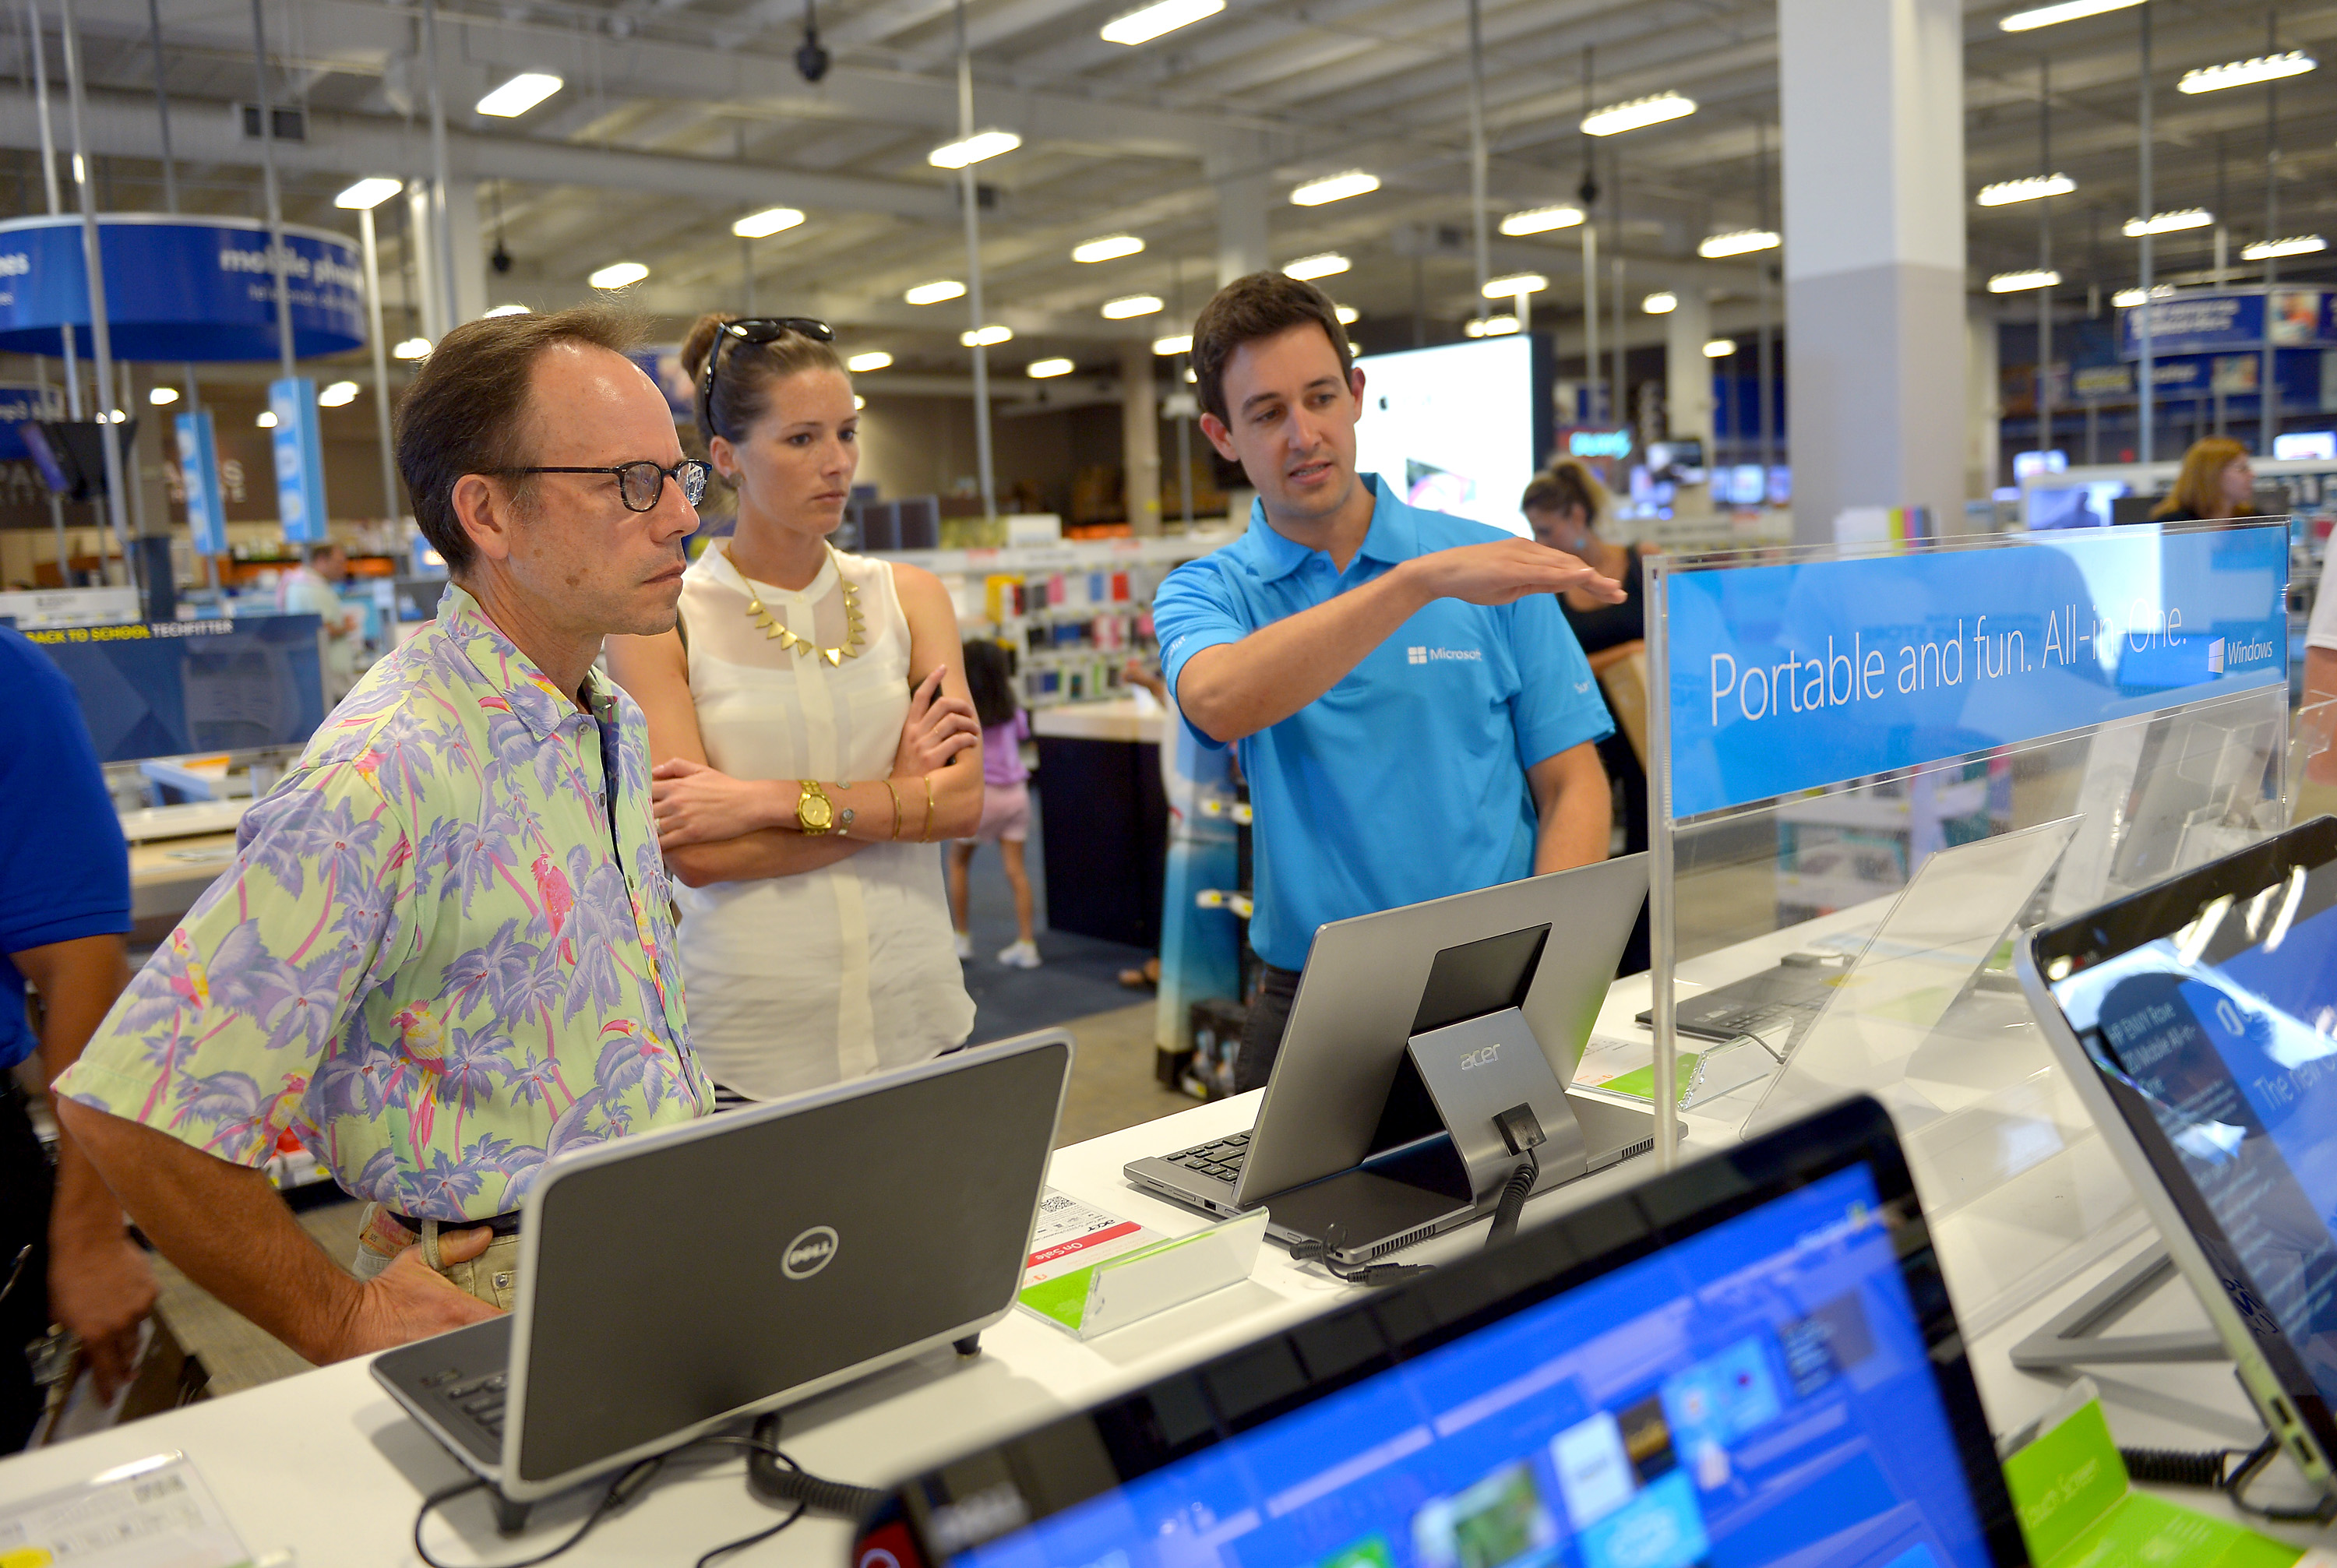 Excited customers check out the latest Windows 8 tech from Microsoft.